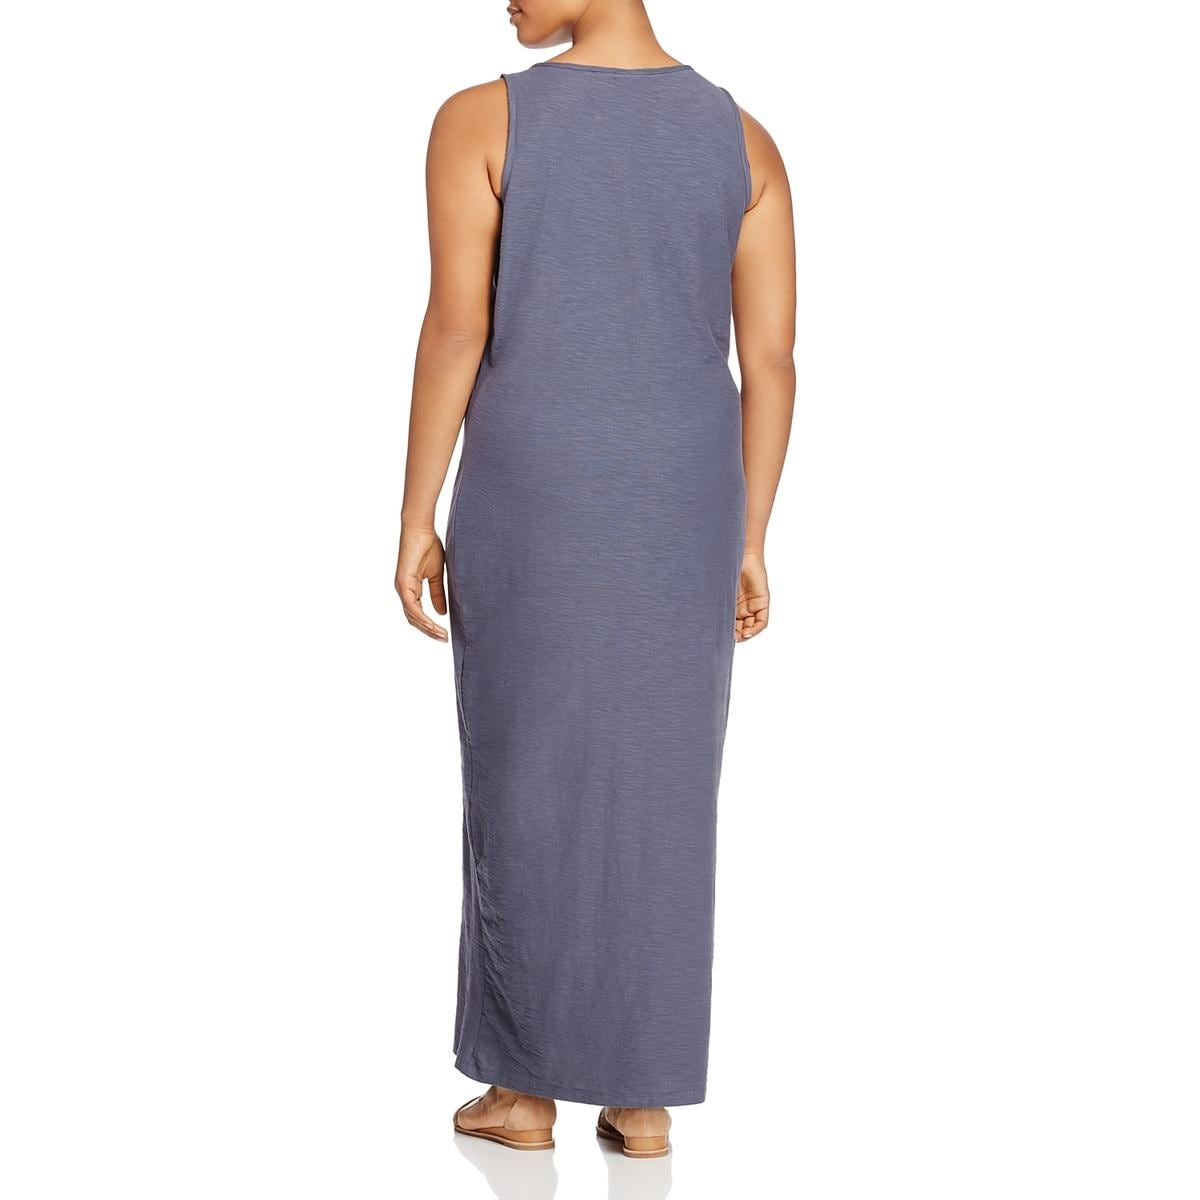 76c18be8d1aa5f Shop Junarose Womens Plus Maximar Maxi Dress Sleeveless Scoop - Free  Shipping On Orders Over $45 - Overstock - 20820658